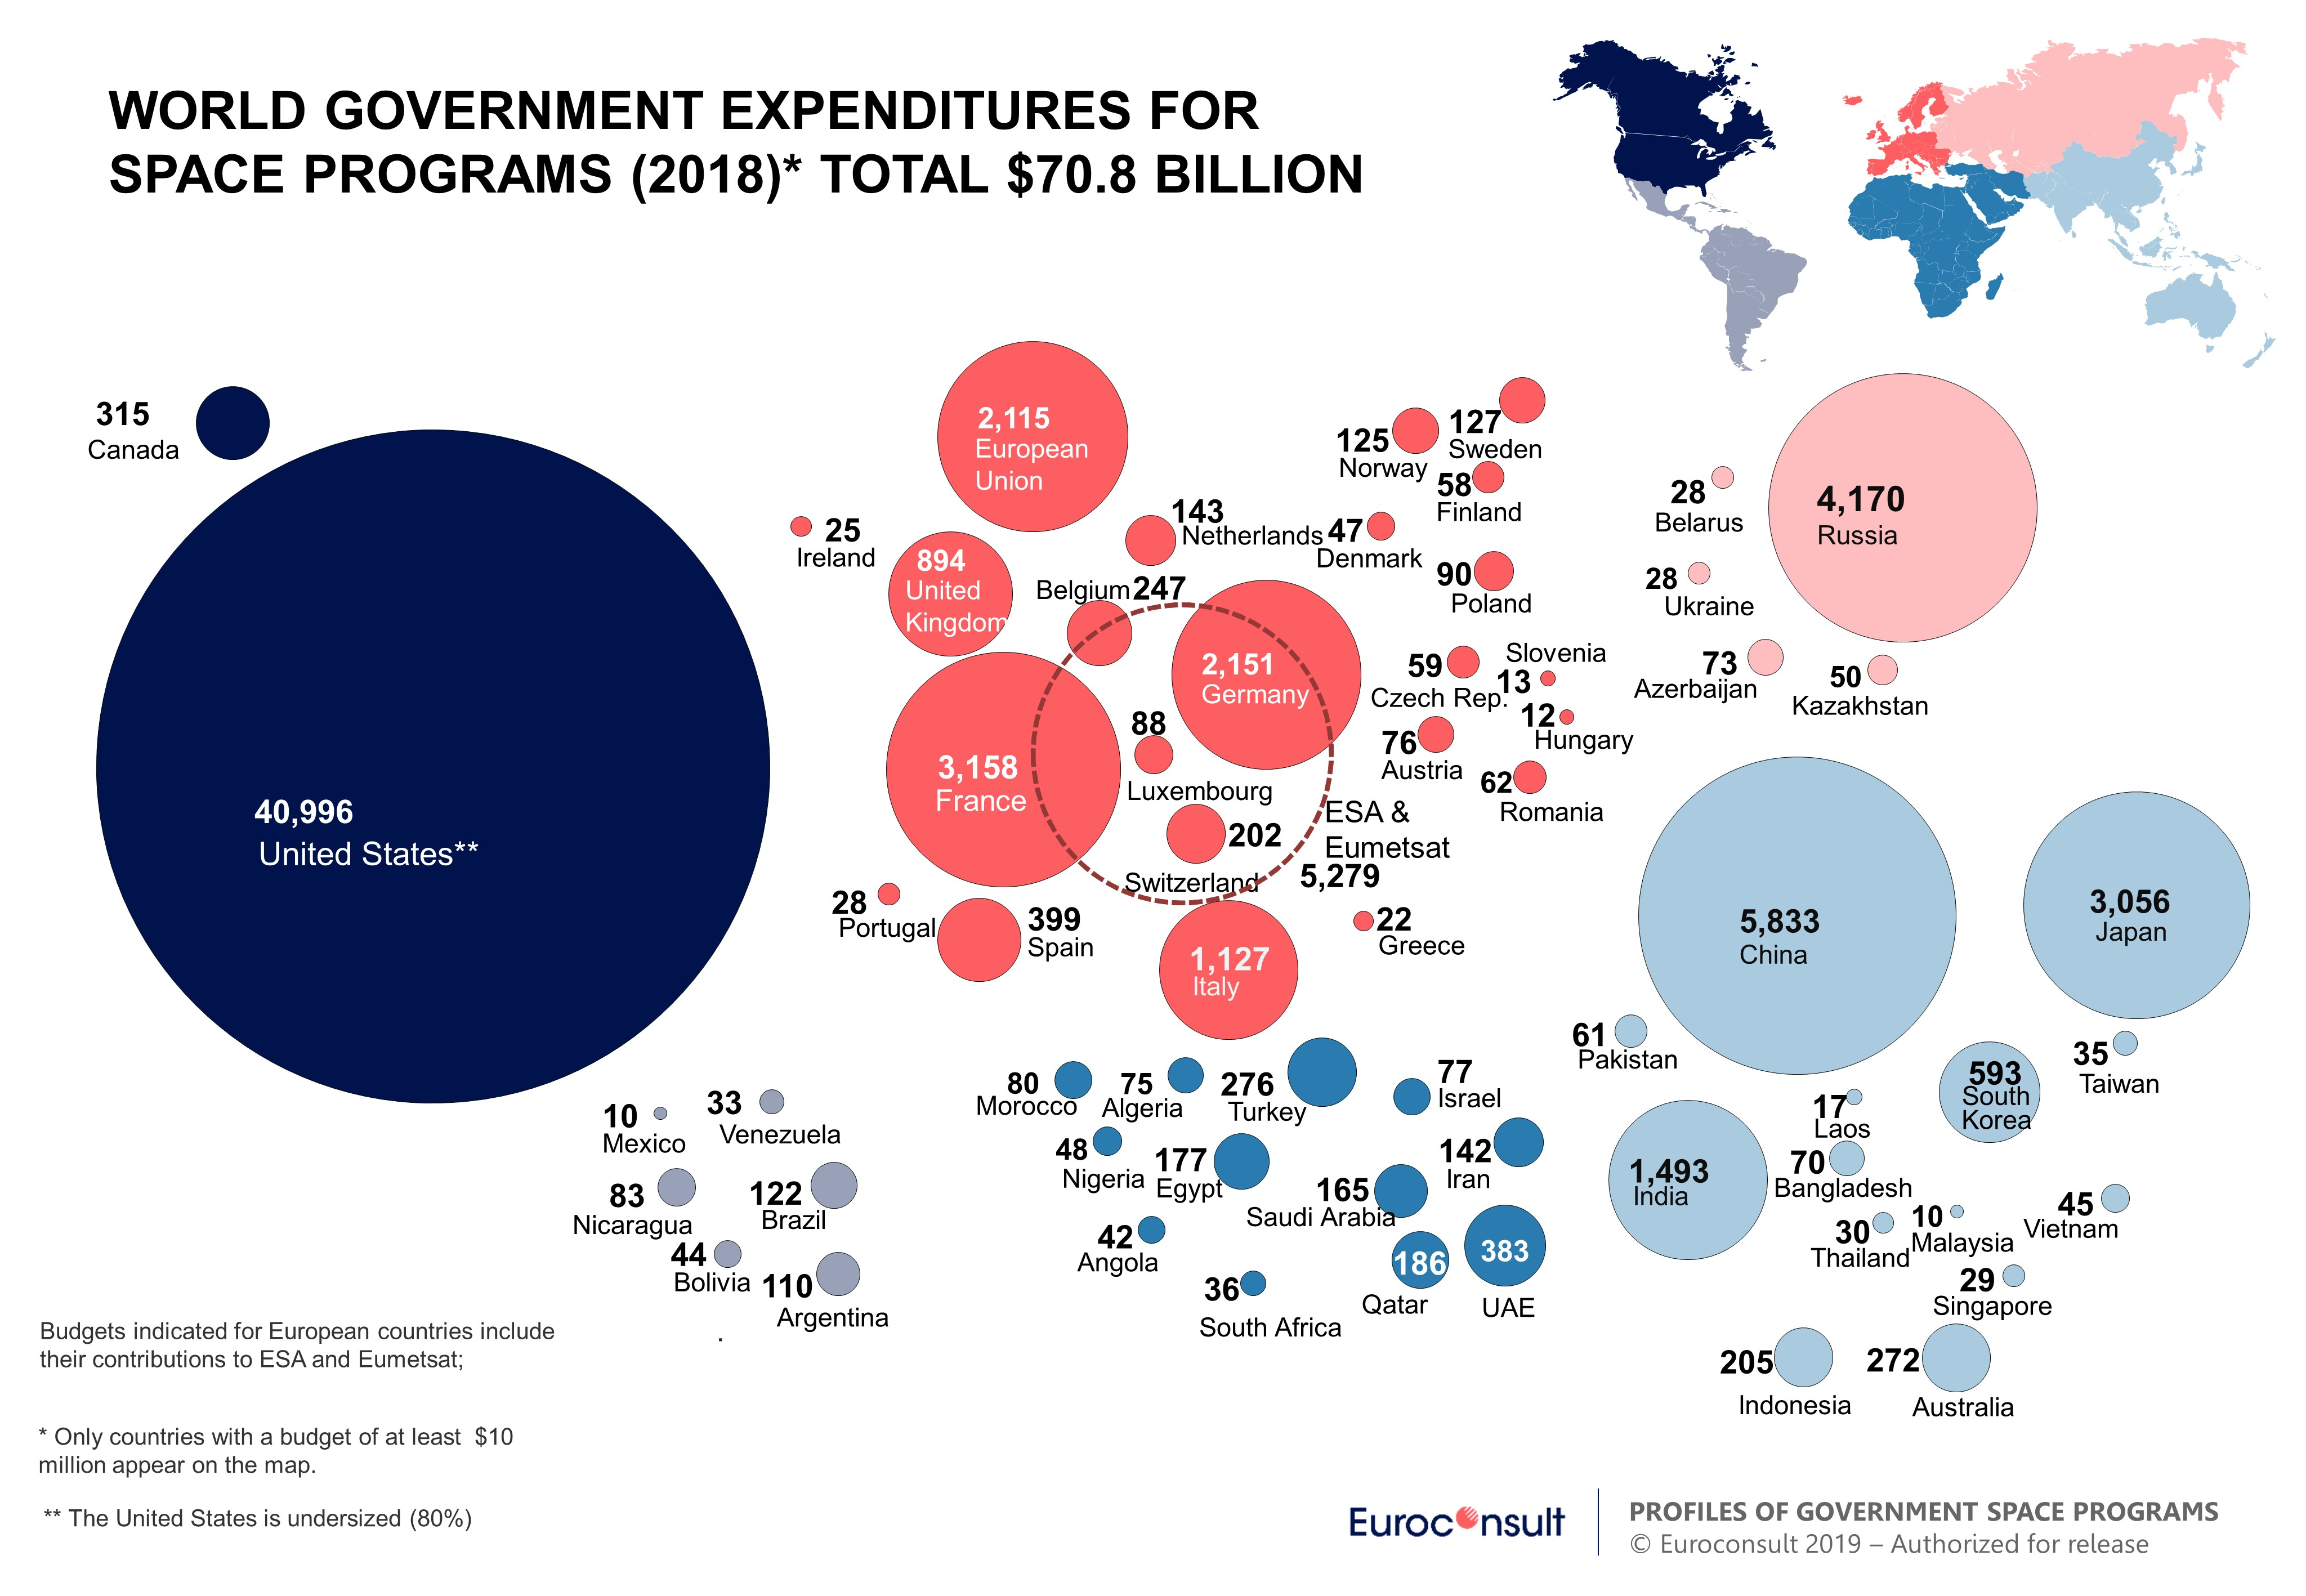 Map showing World Government Expenditure for Space Programs 2018 (Total $70.8 billion) o